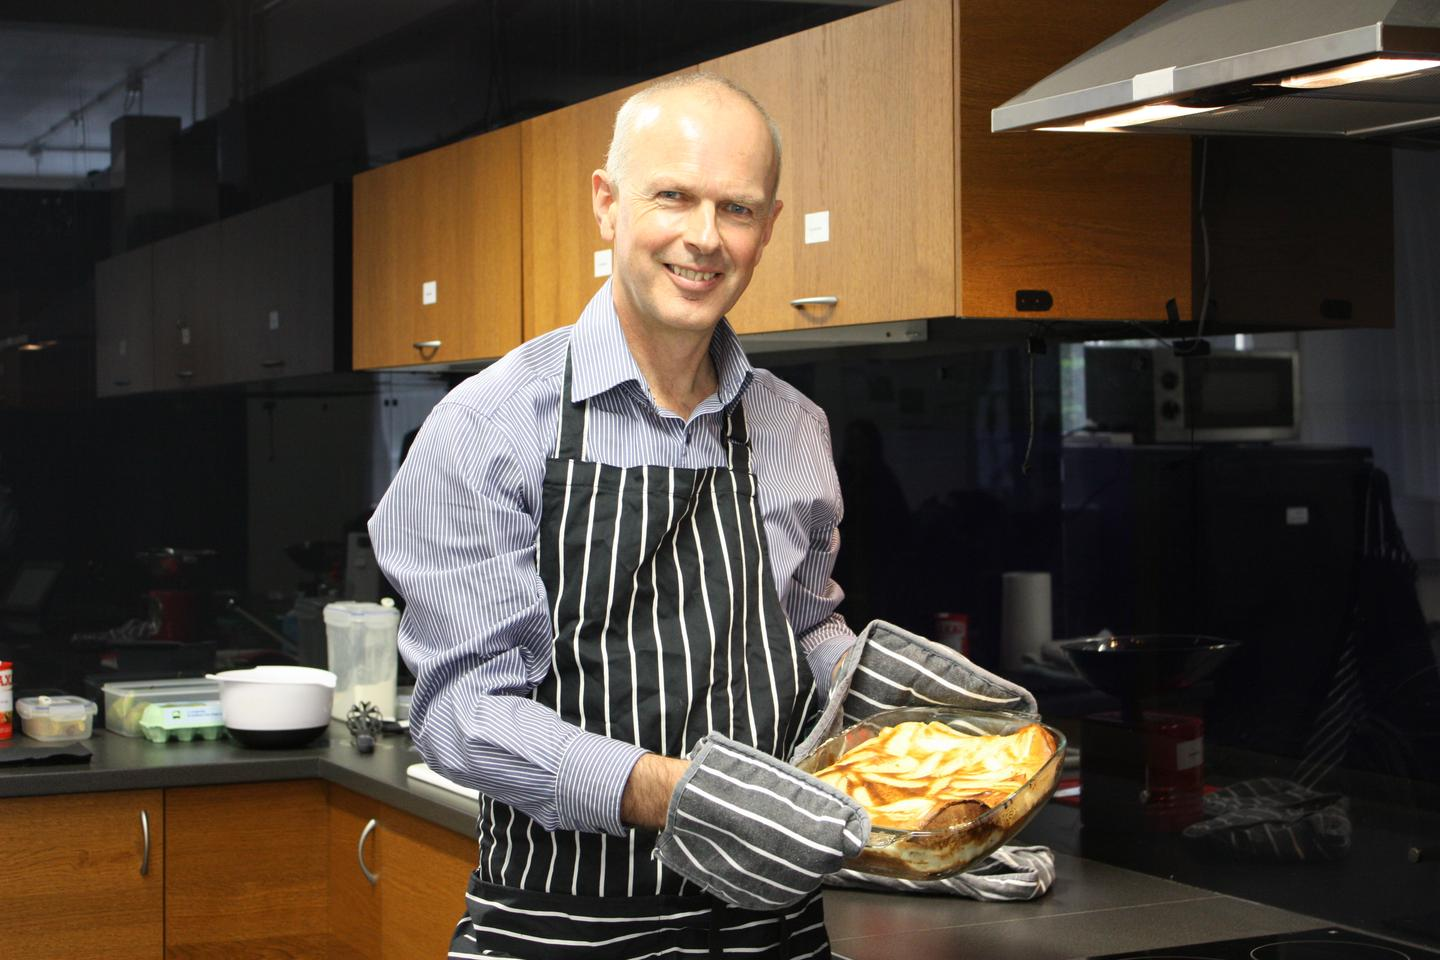 Newcastle's Professor Paul Seedhouse, one of the two leaders of the French Digital Kitchen project